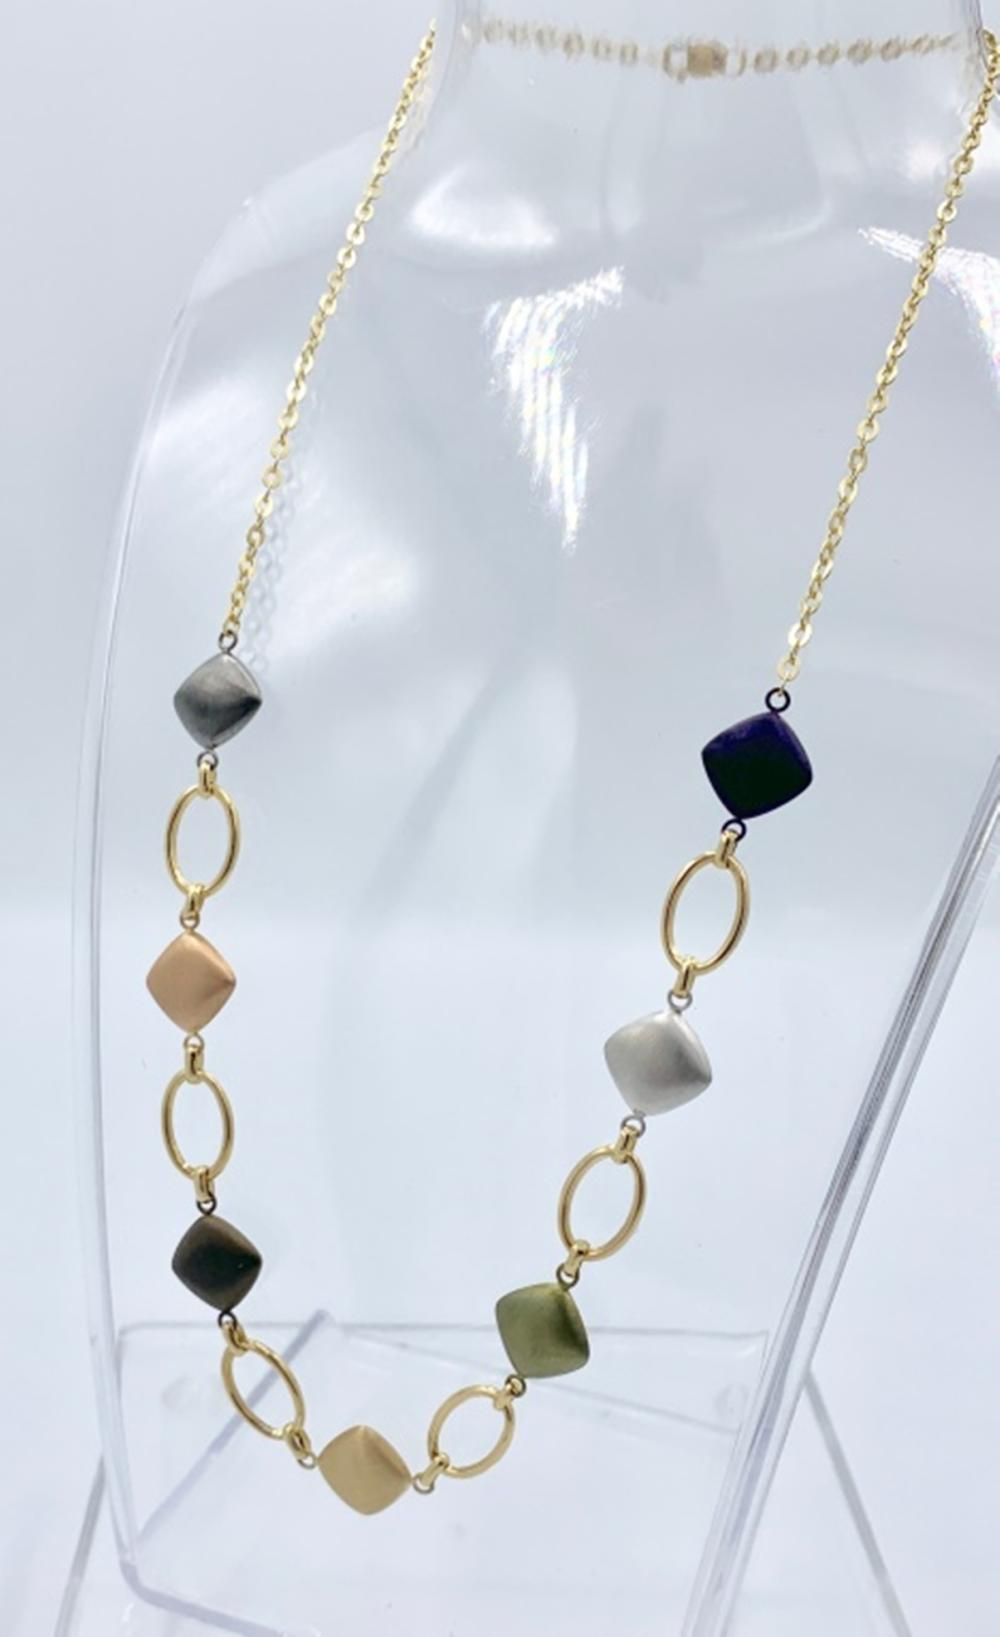 14K YELLOW GOLD WITH COLORED GOLD NECKLACE